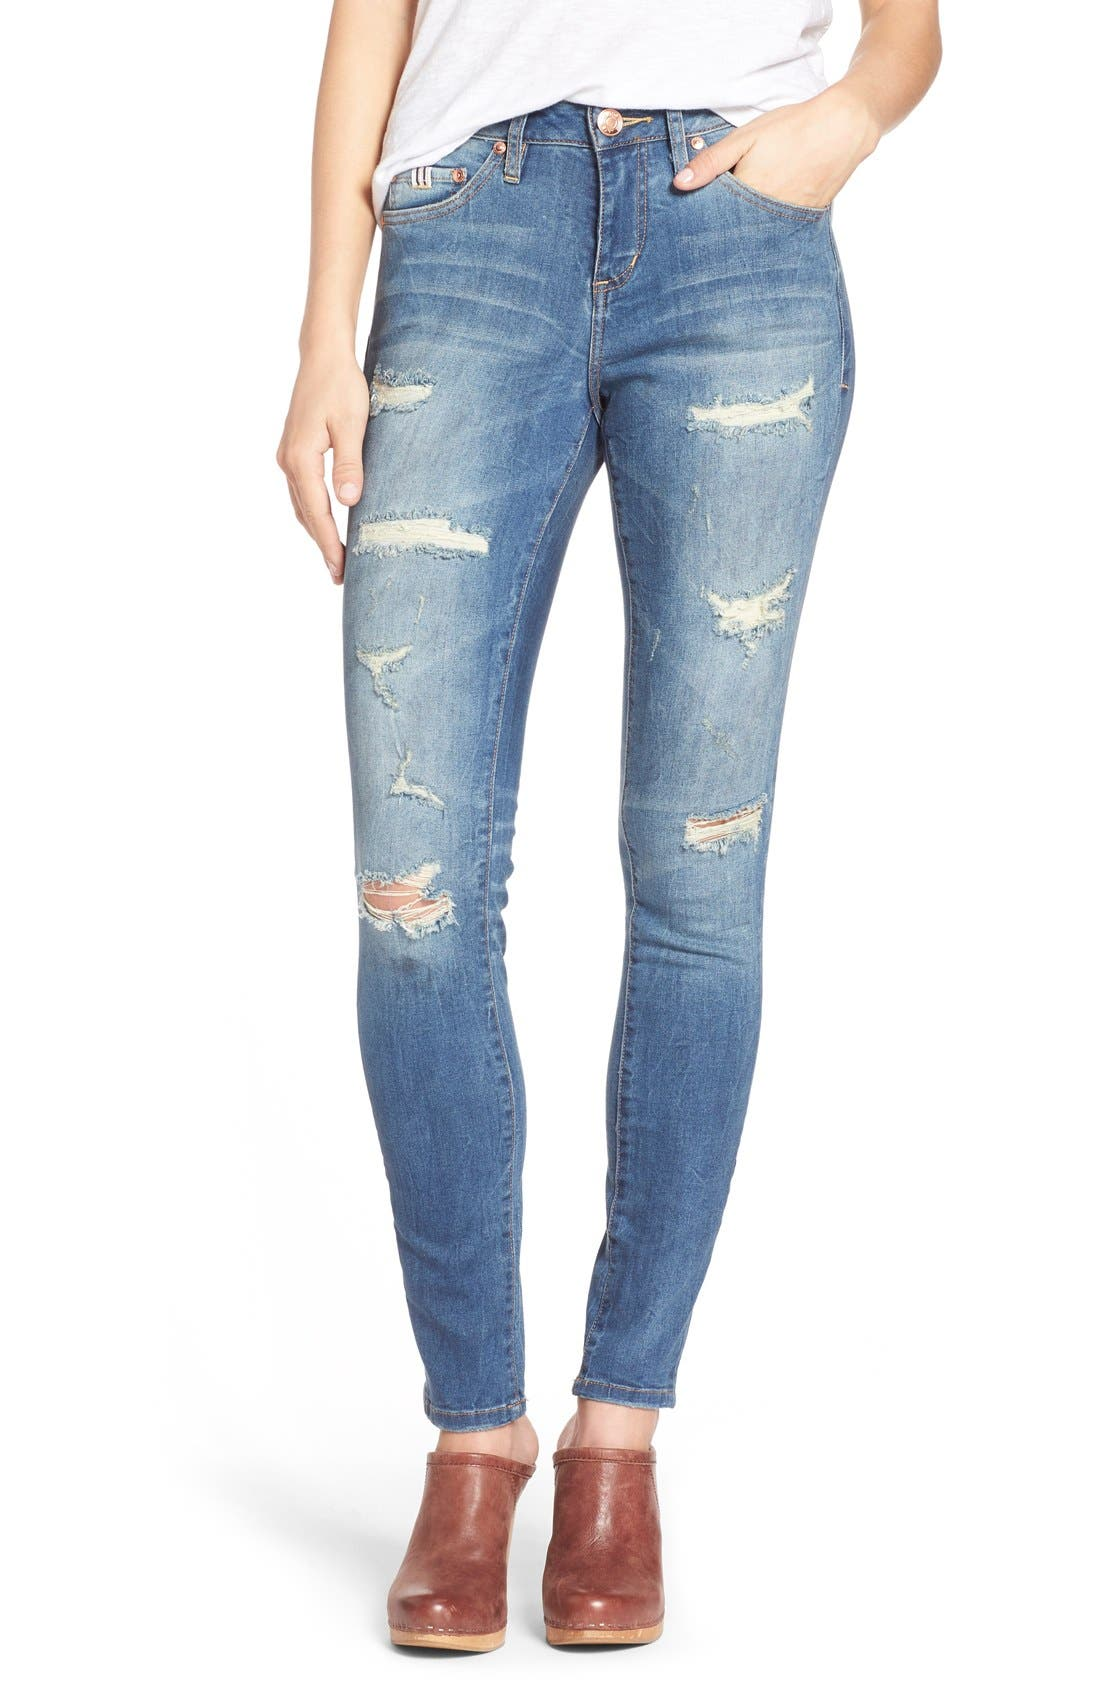 JAG JEANS Sheridan Distressed Skinny Jeans